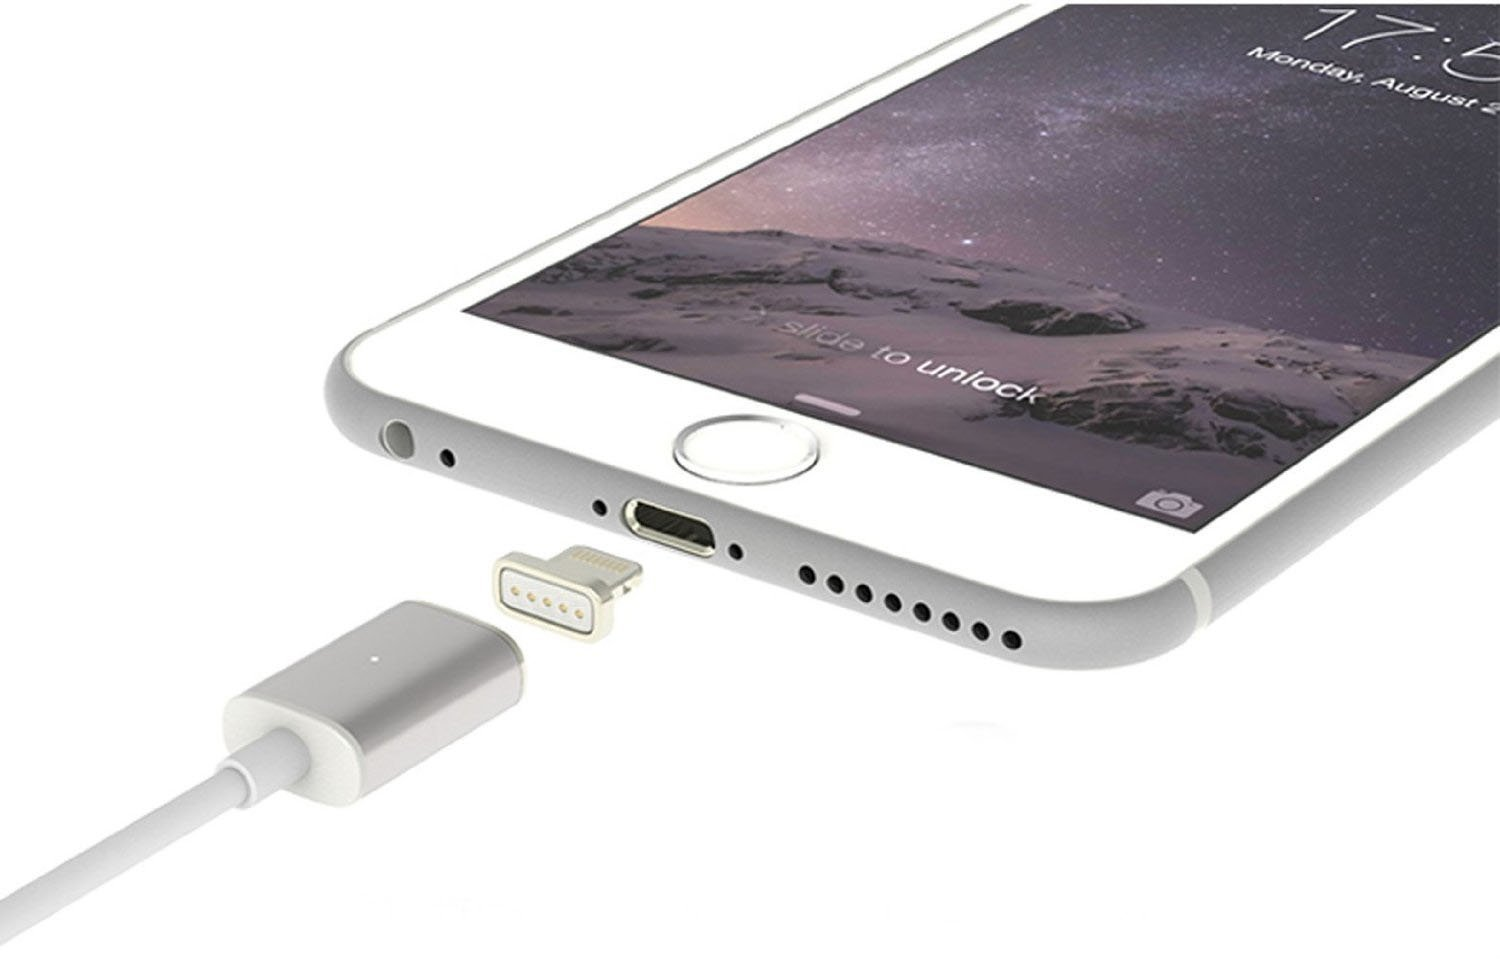 10 Kwik Charger iPhone Review